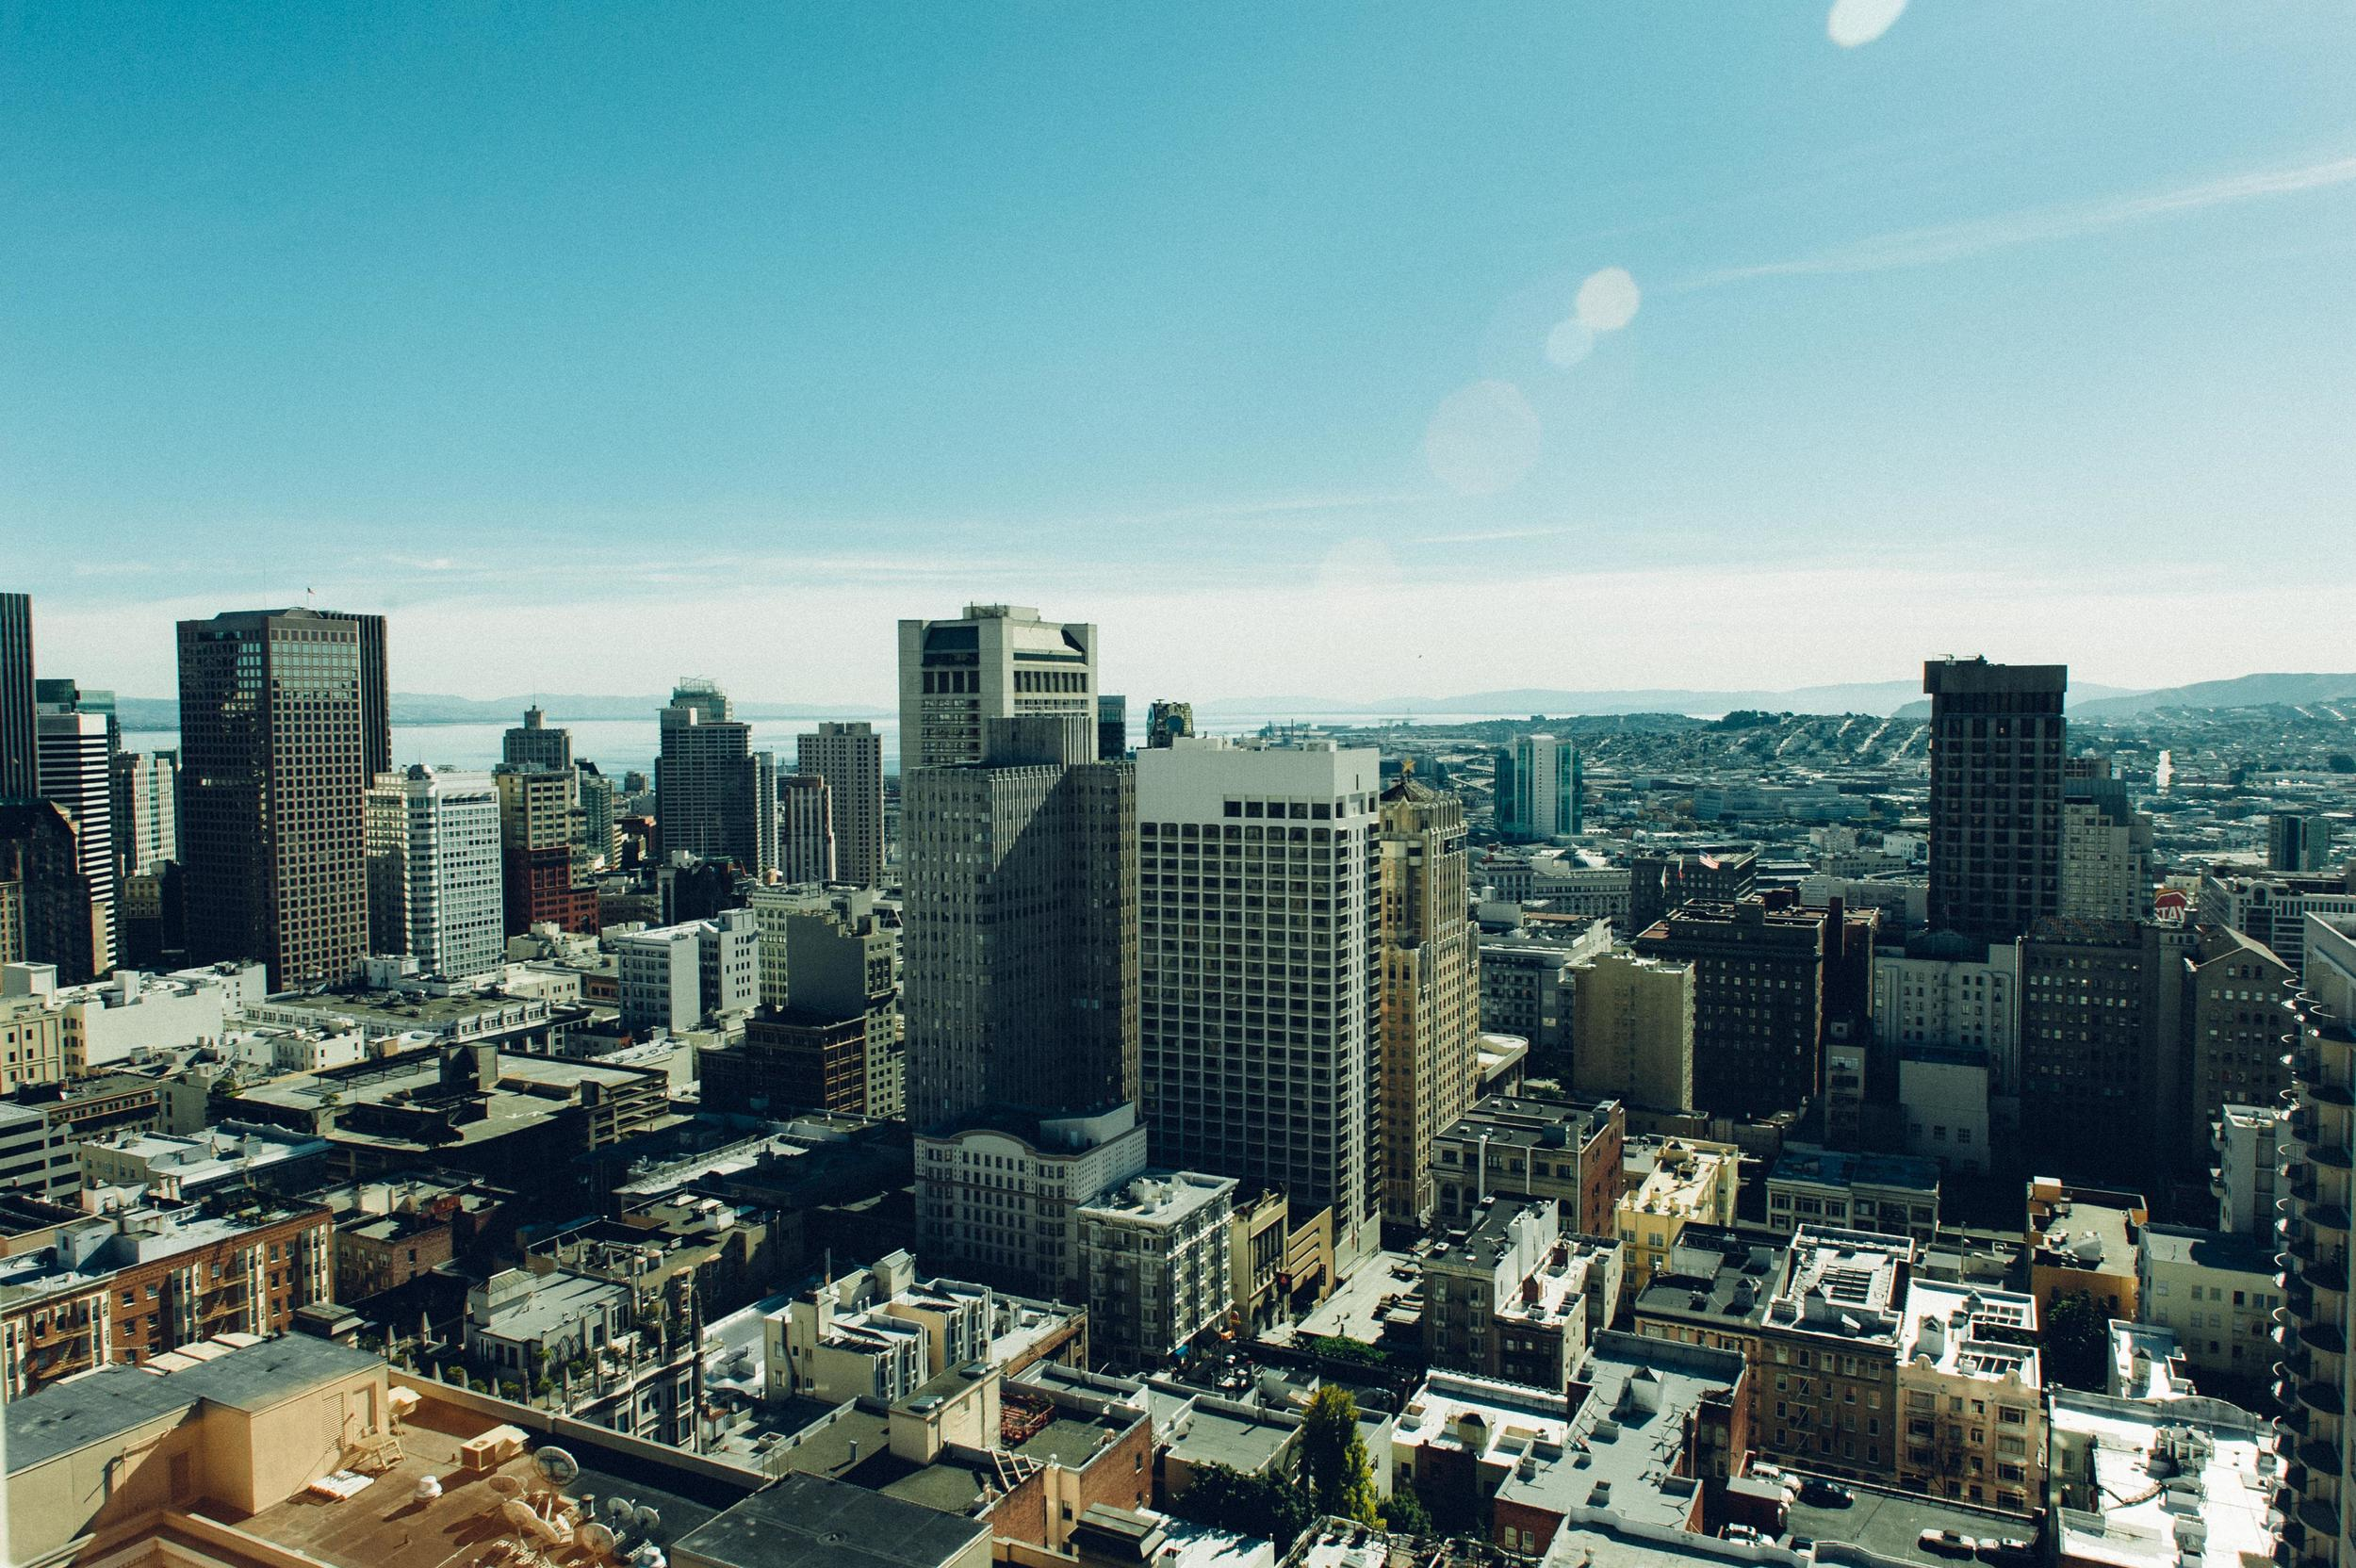 cityscape-downtown-los-angeles_23479787685_o.jpg